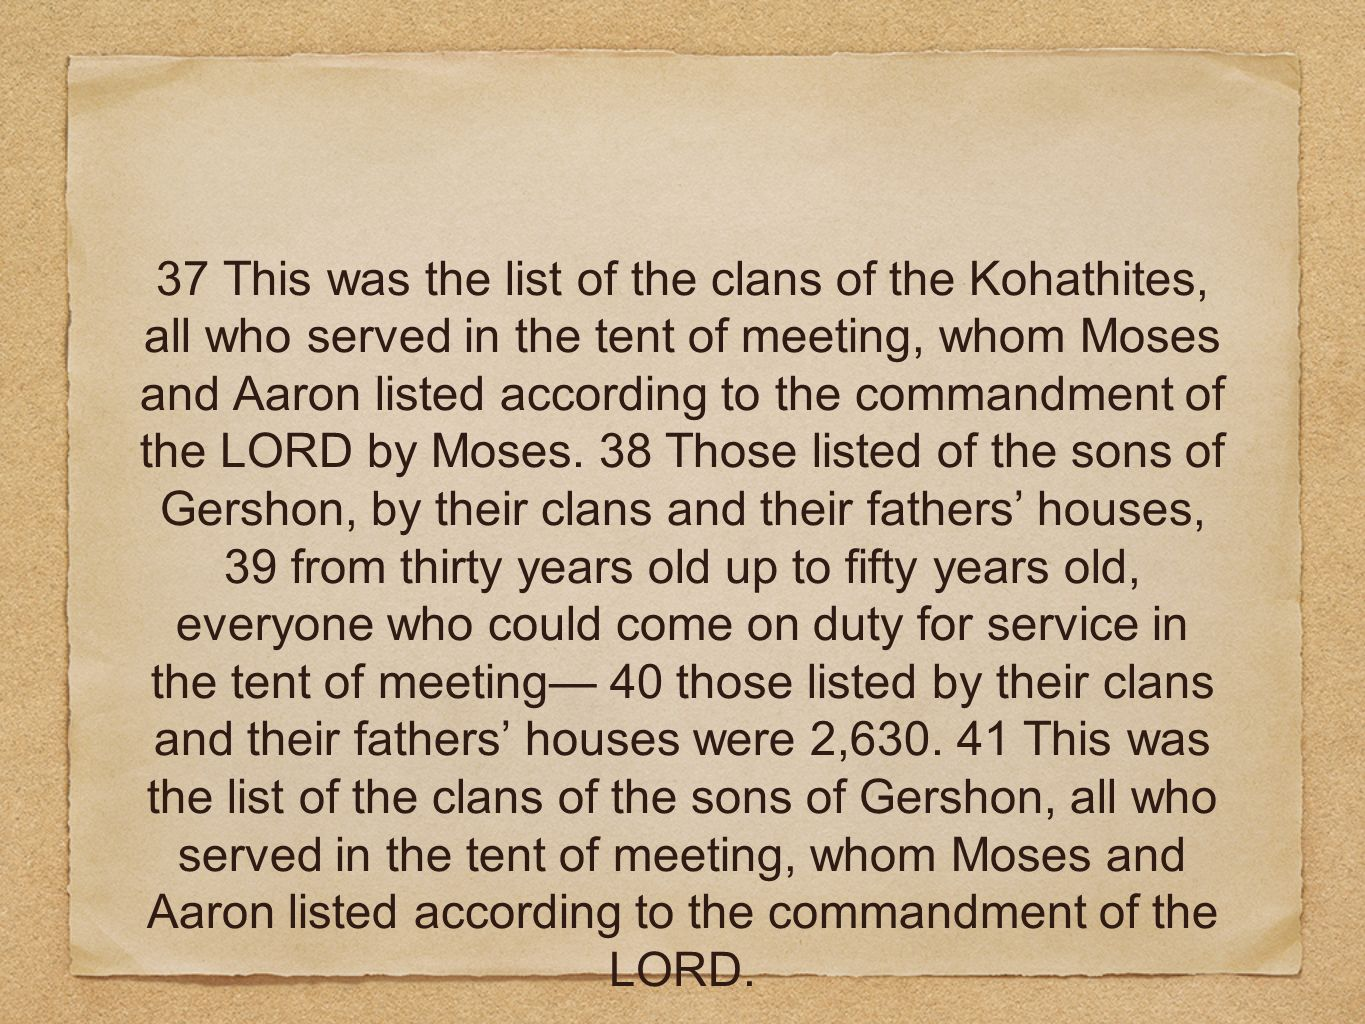 37 This was the list of the clans of the Kohathites, all who served in the tent of meeting, whom Moses and Aaron listed according to the commandment o